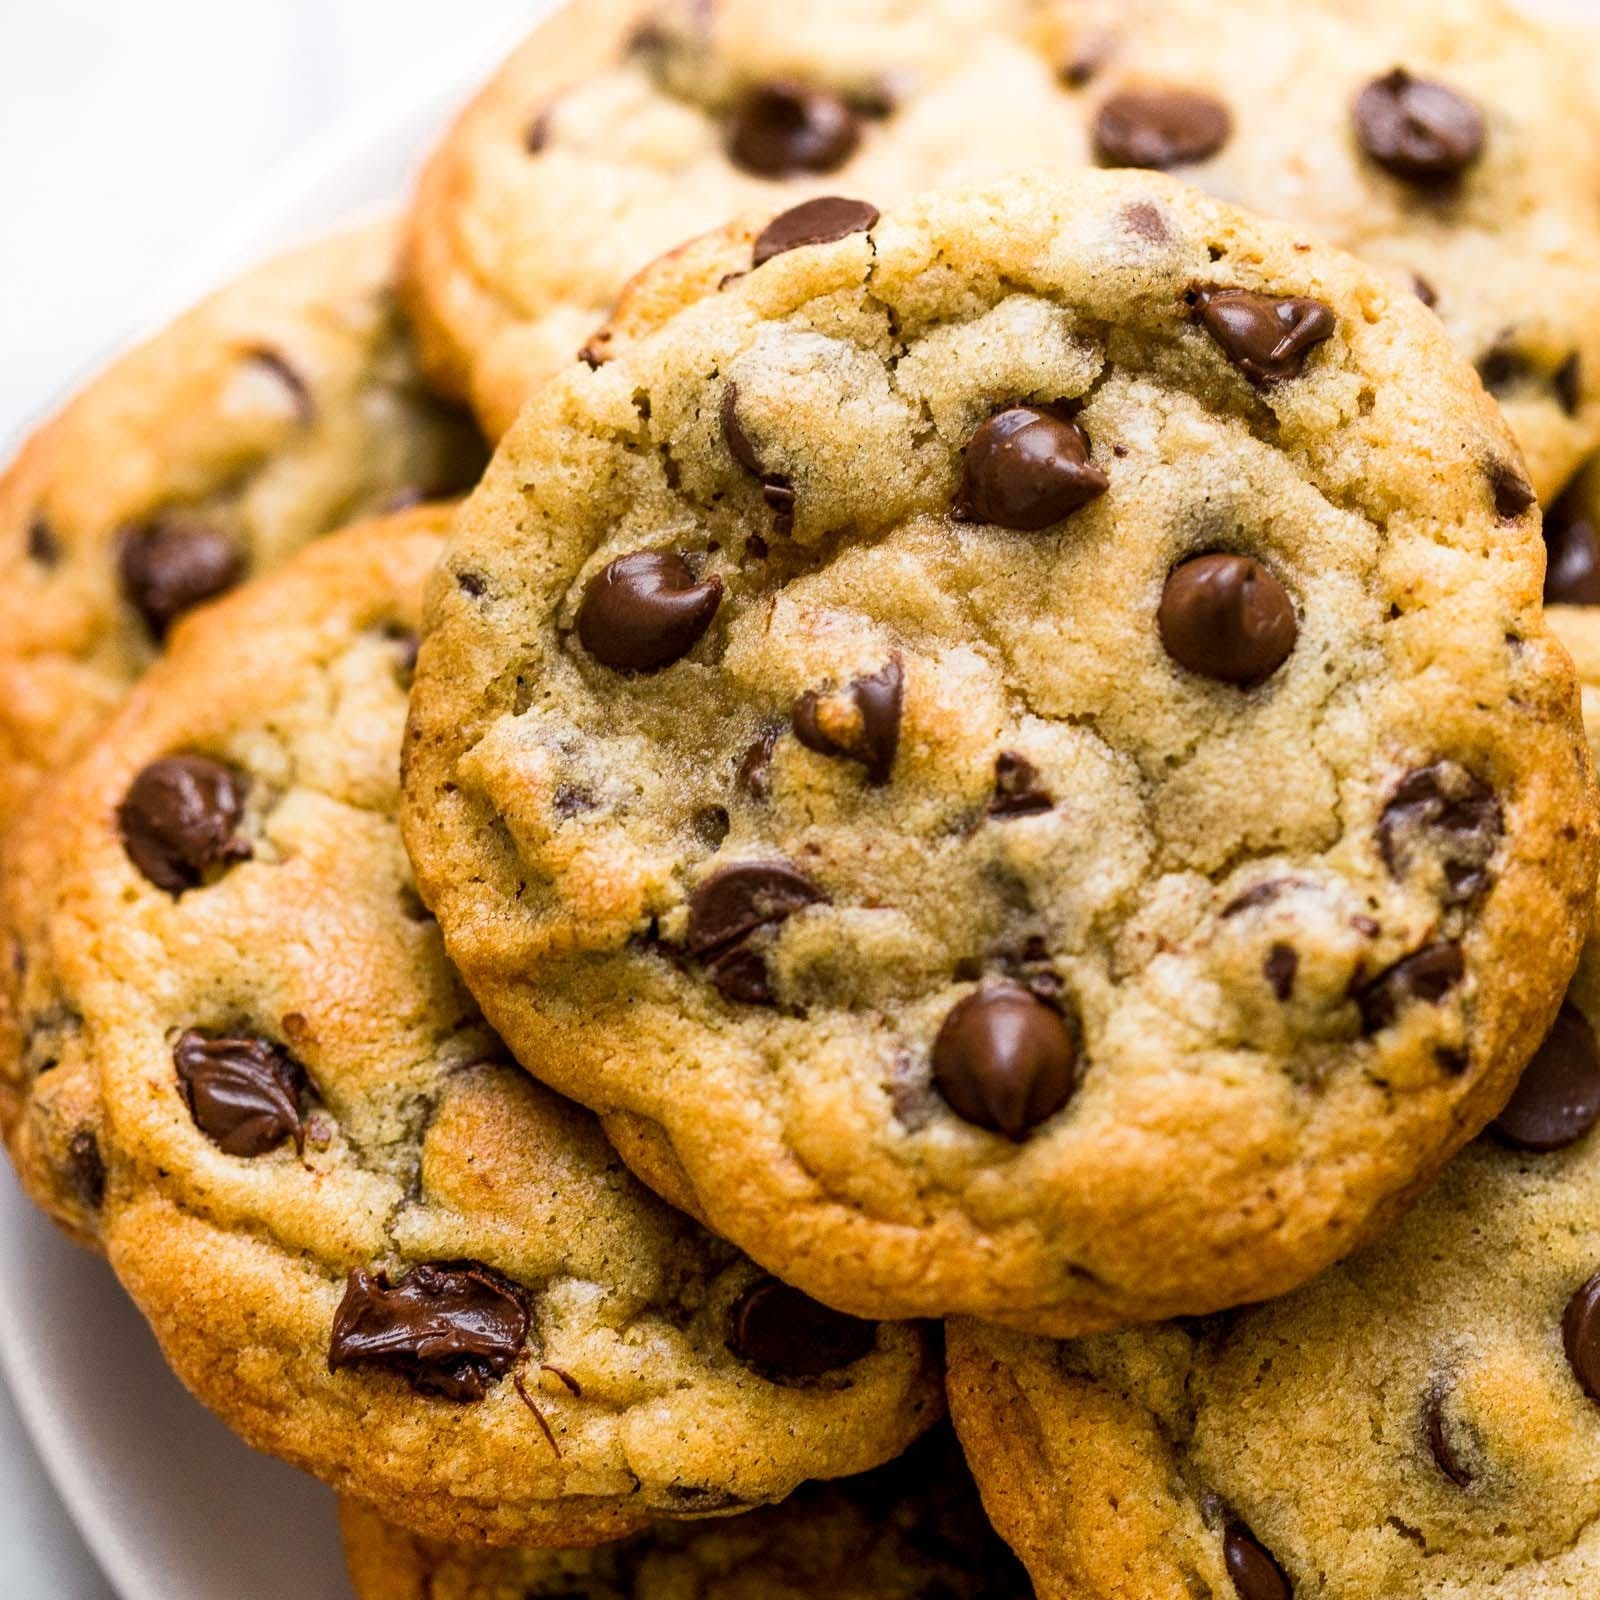 edible-arcadia-brands-chocolate-chip-cookie-10mg-thc-each